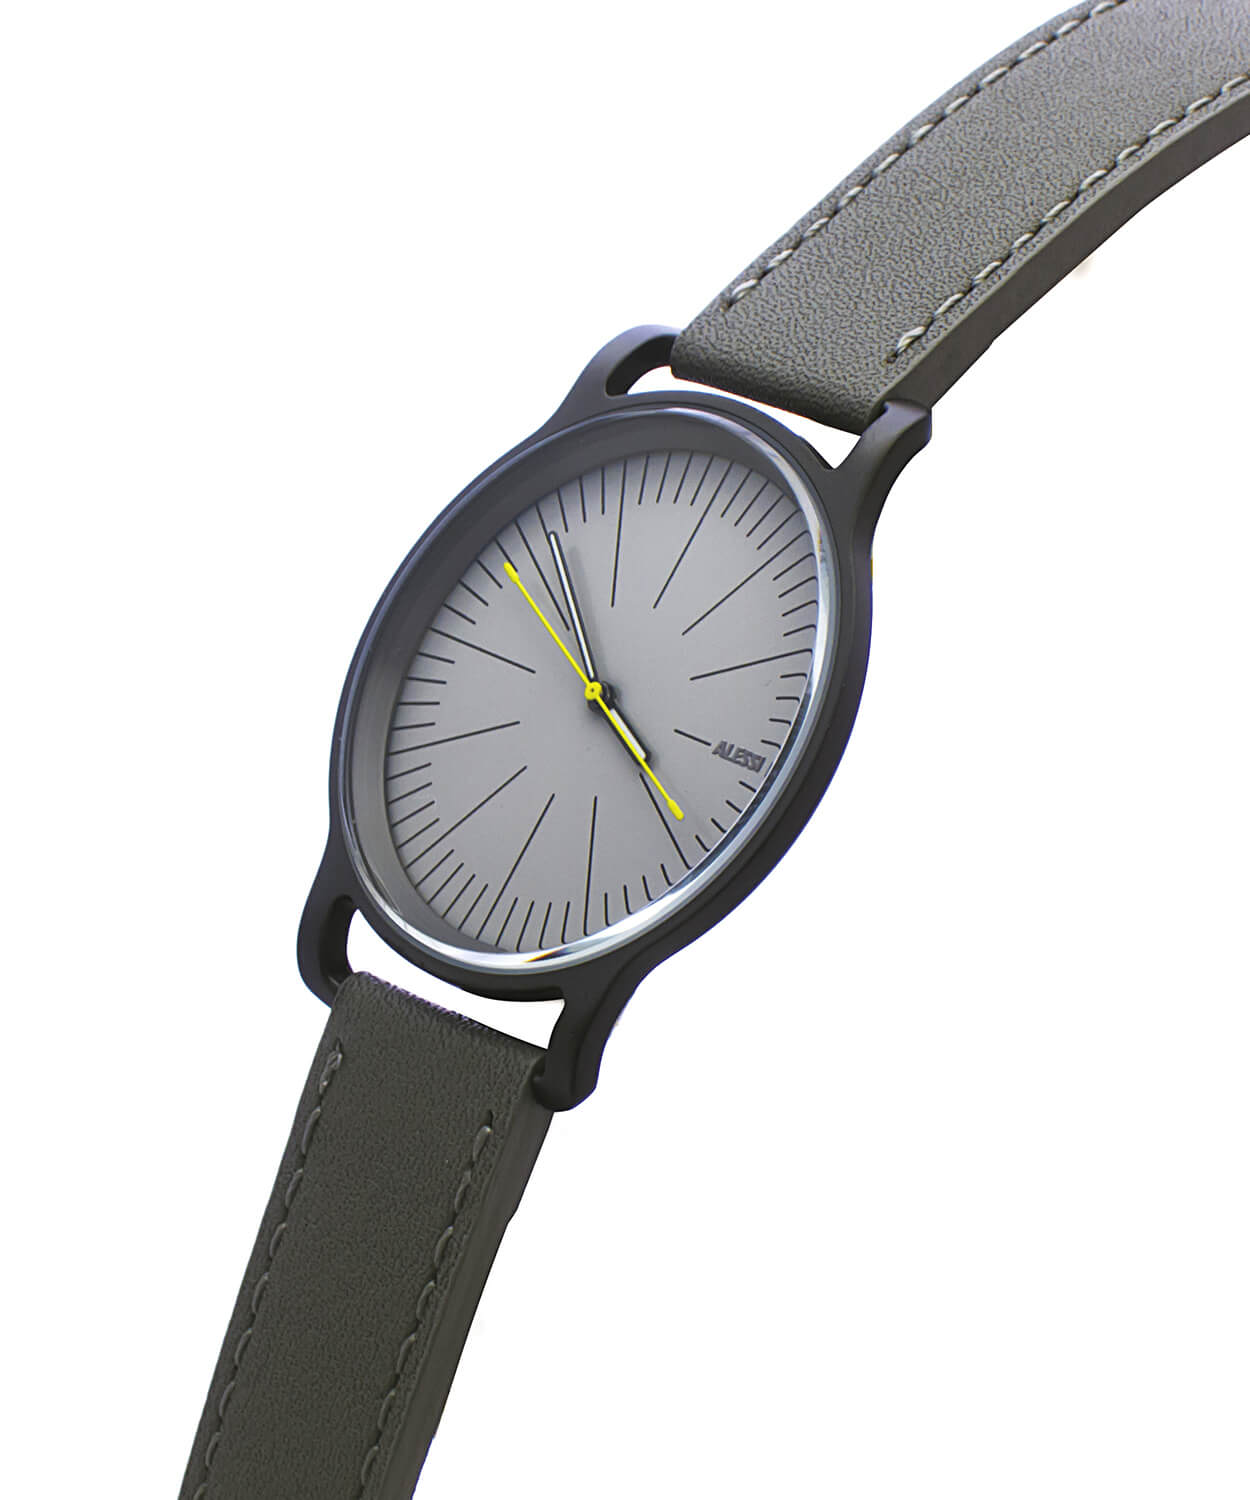 L'Orologio for AlessiWatch